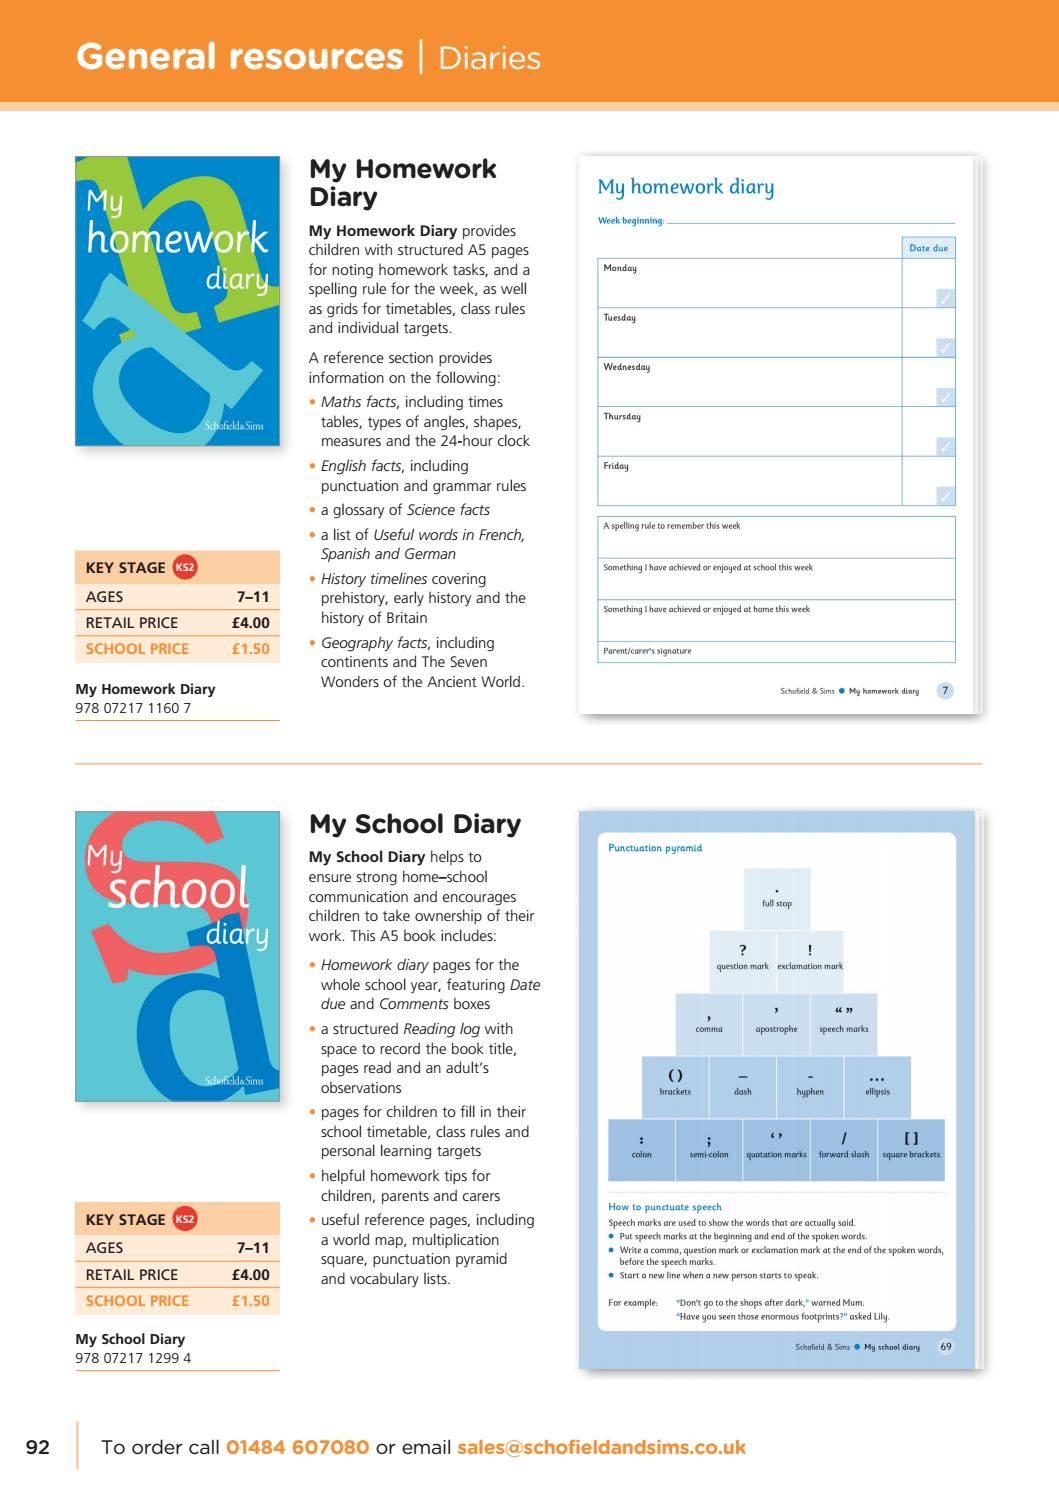 Schofield & Sims 2019 Primary Catalogue by Schofield & Sims